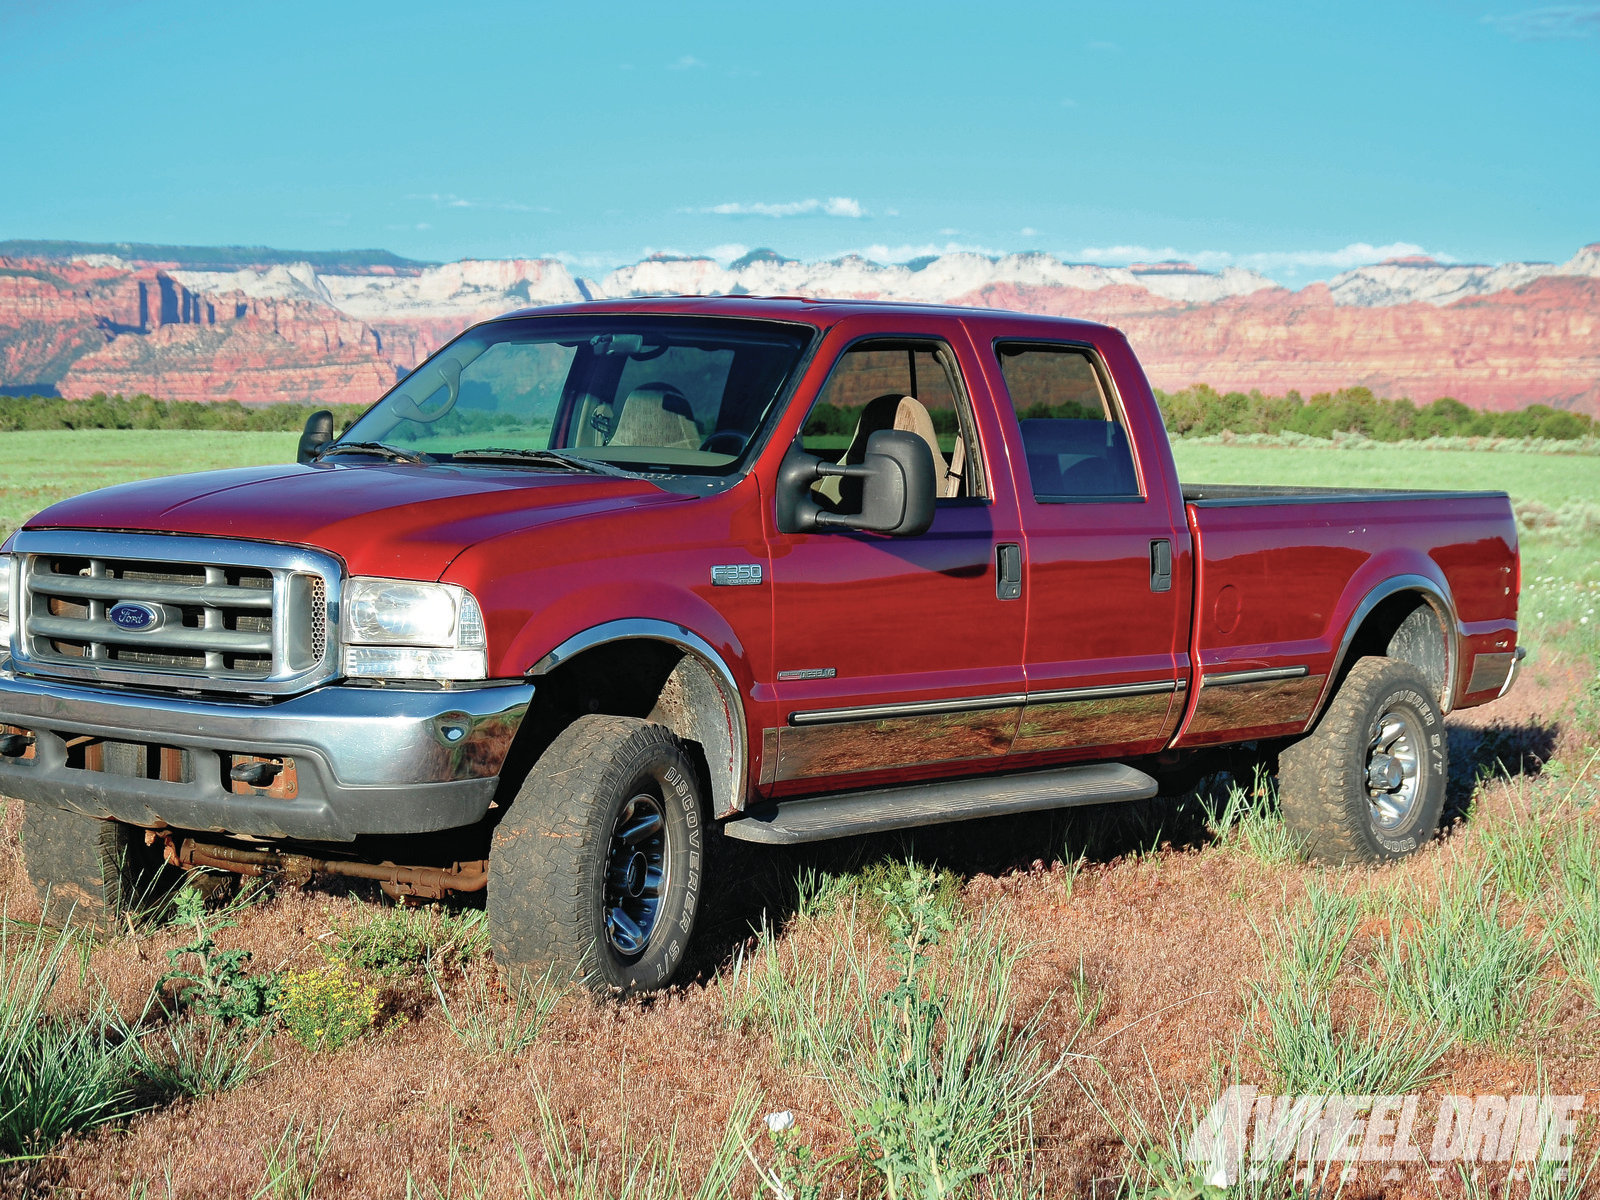 1999 Ford F-350 Super Duty For Sale - Carsforsale.com